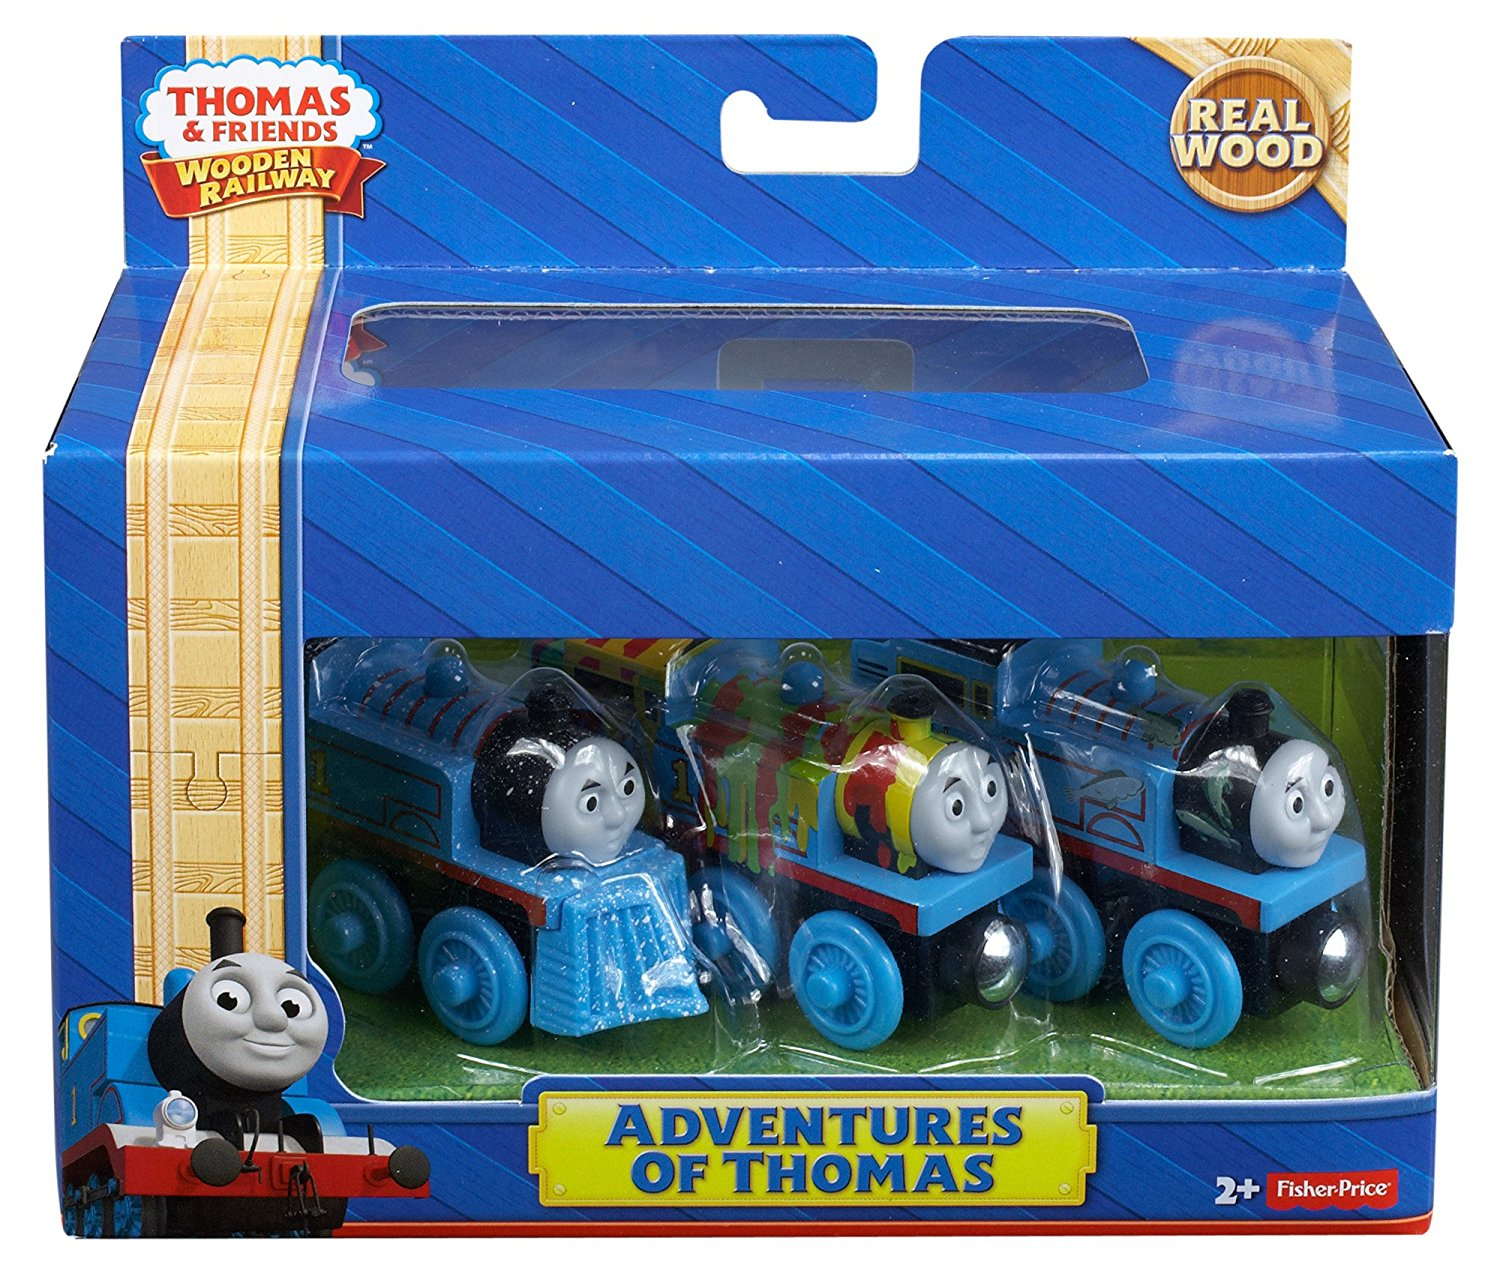 Fisher Price Thomas The Train Wooden Railway Adventures Of Thomas Y4102